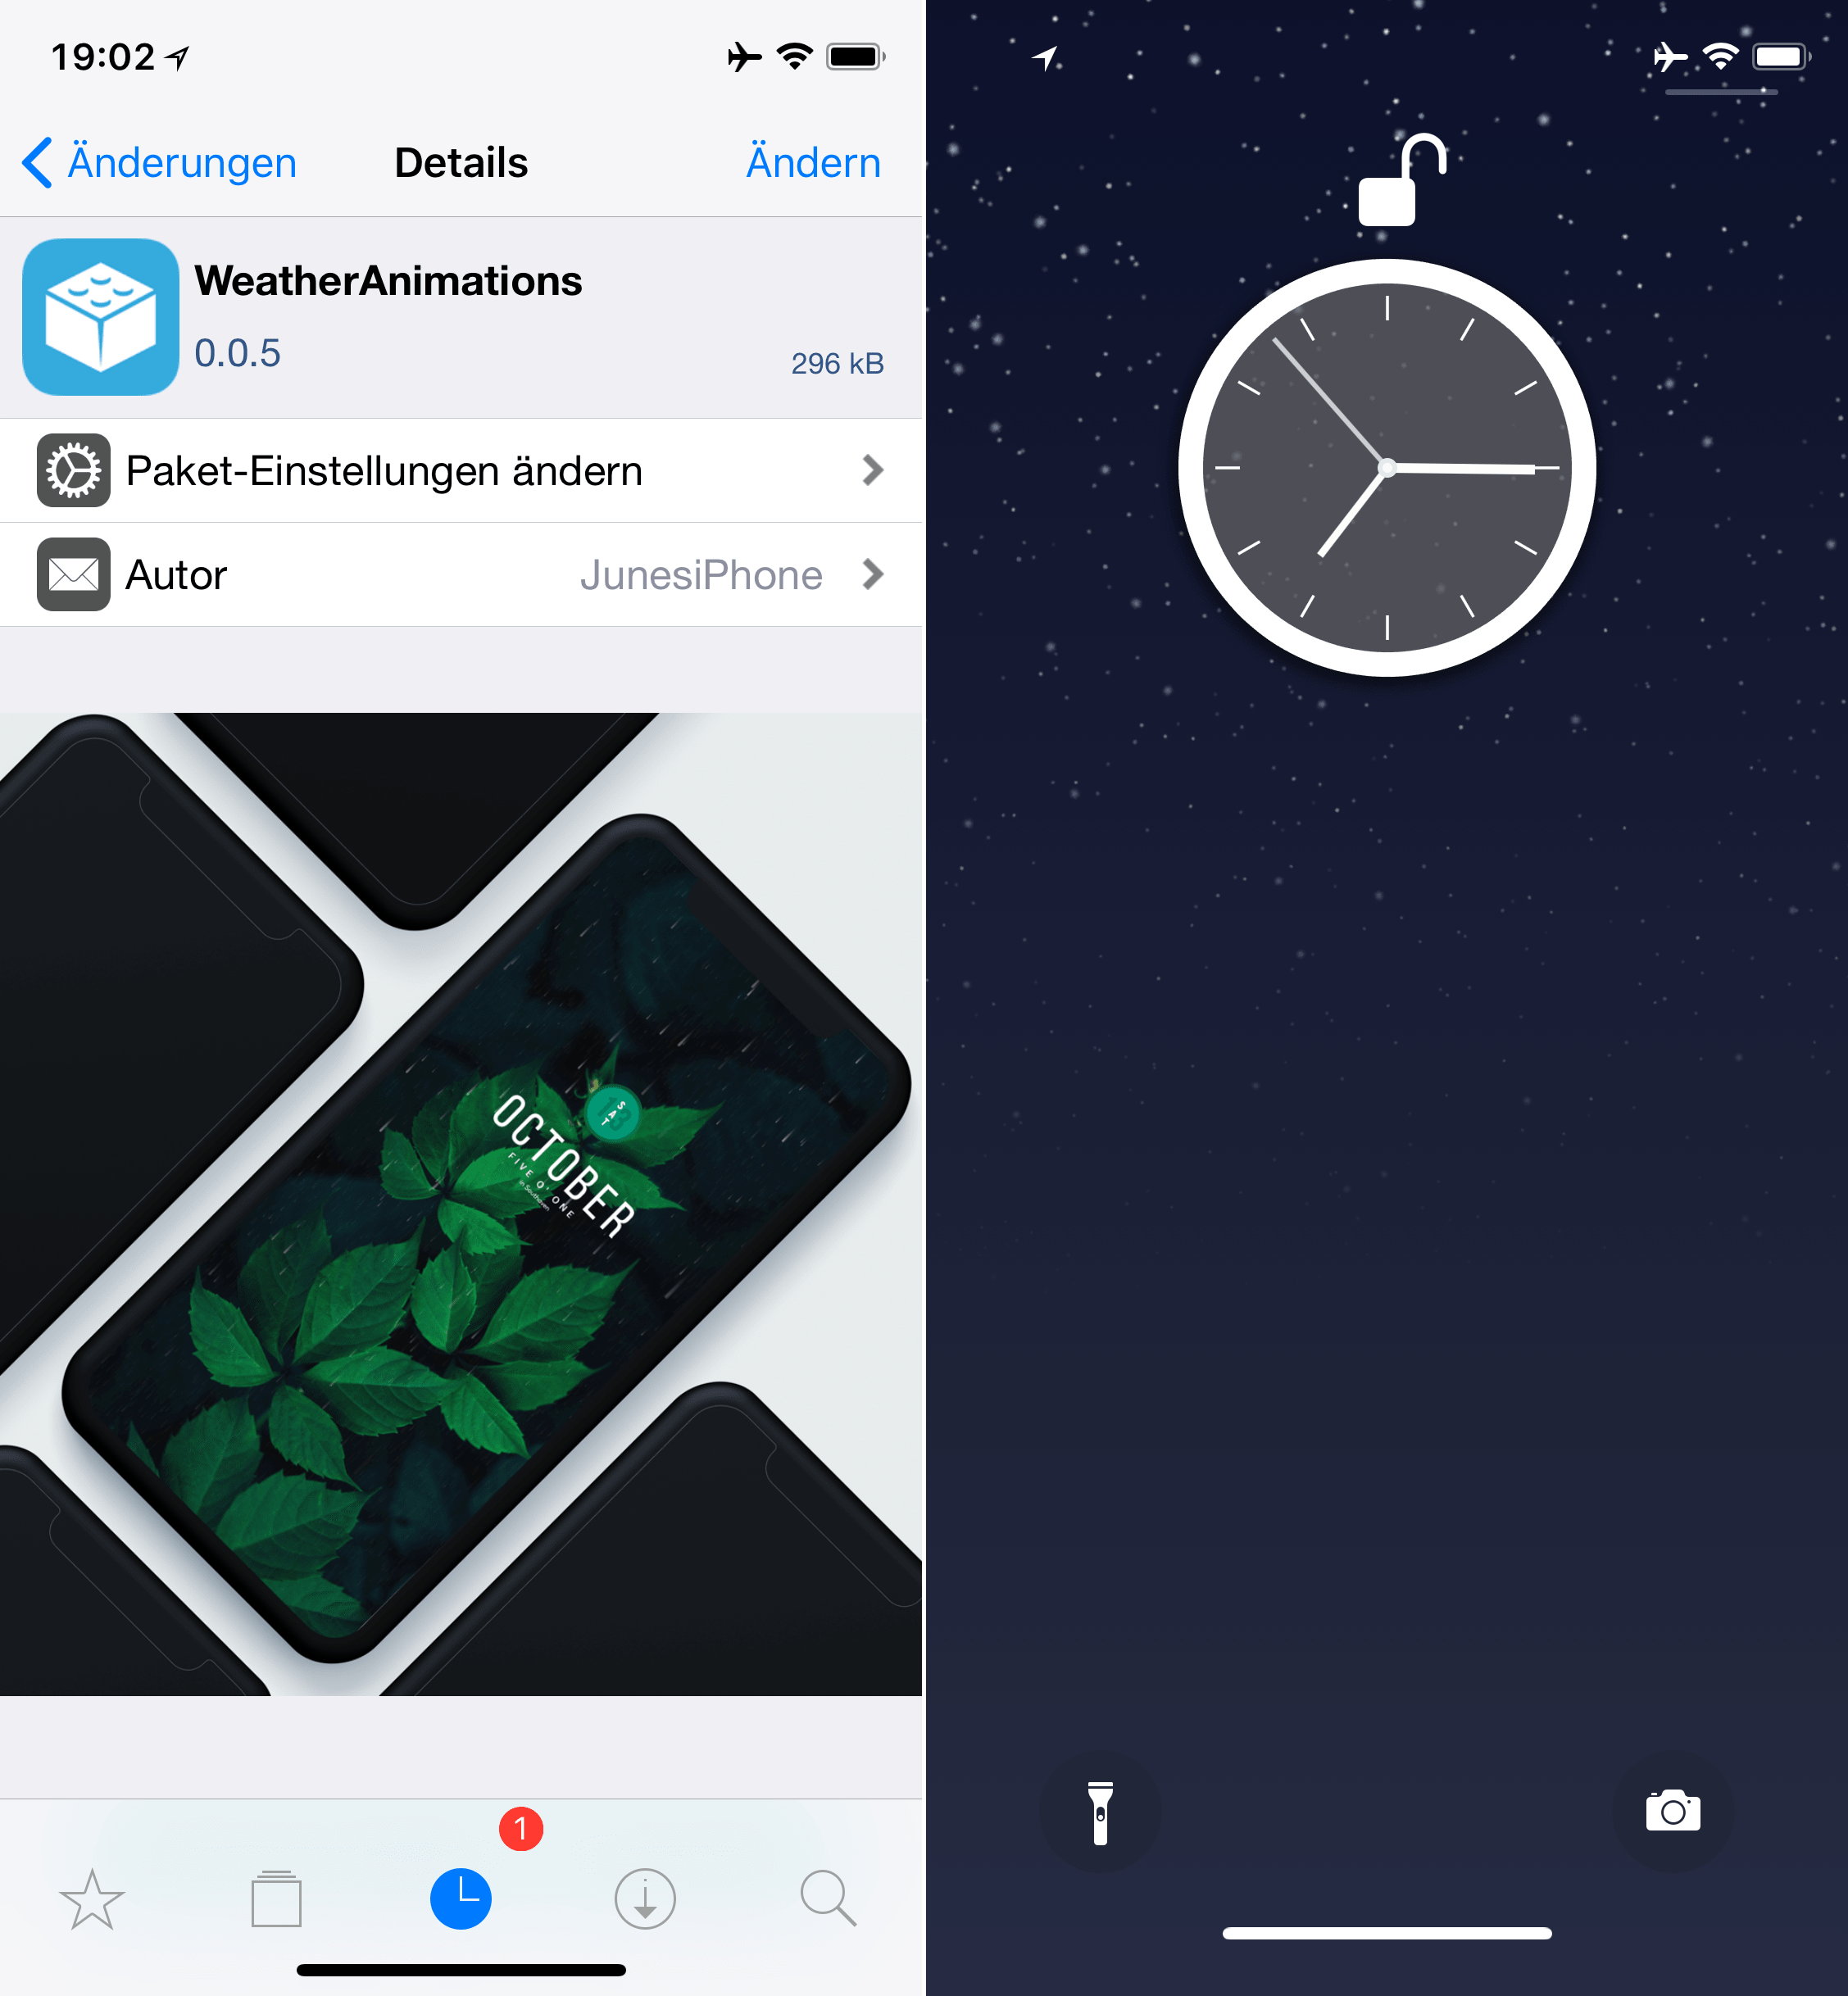 Wetter als Animation im Sperrbildschirm, WeatherAnimations, Top, Cydia, Tweak, Sileo, Hack4Life, Fabian Geissler, Download, iOS 11, .deb, Tutorial